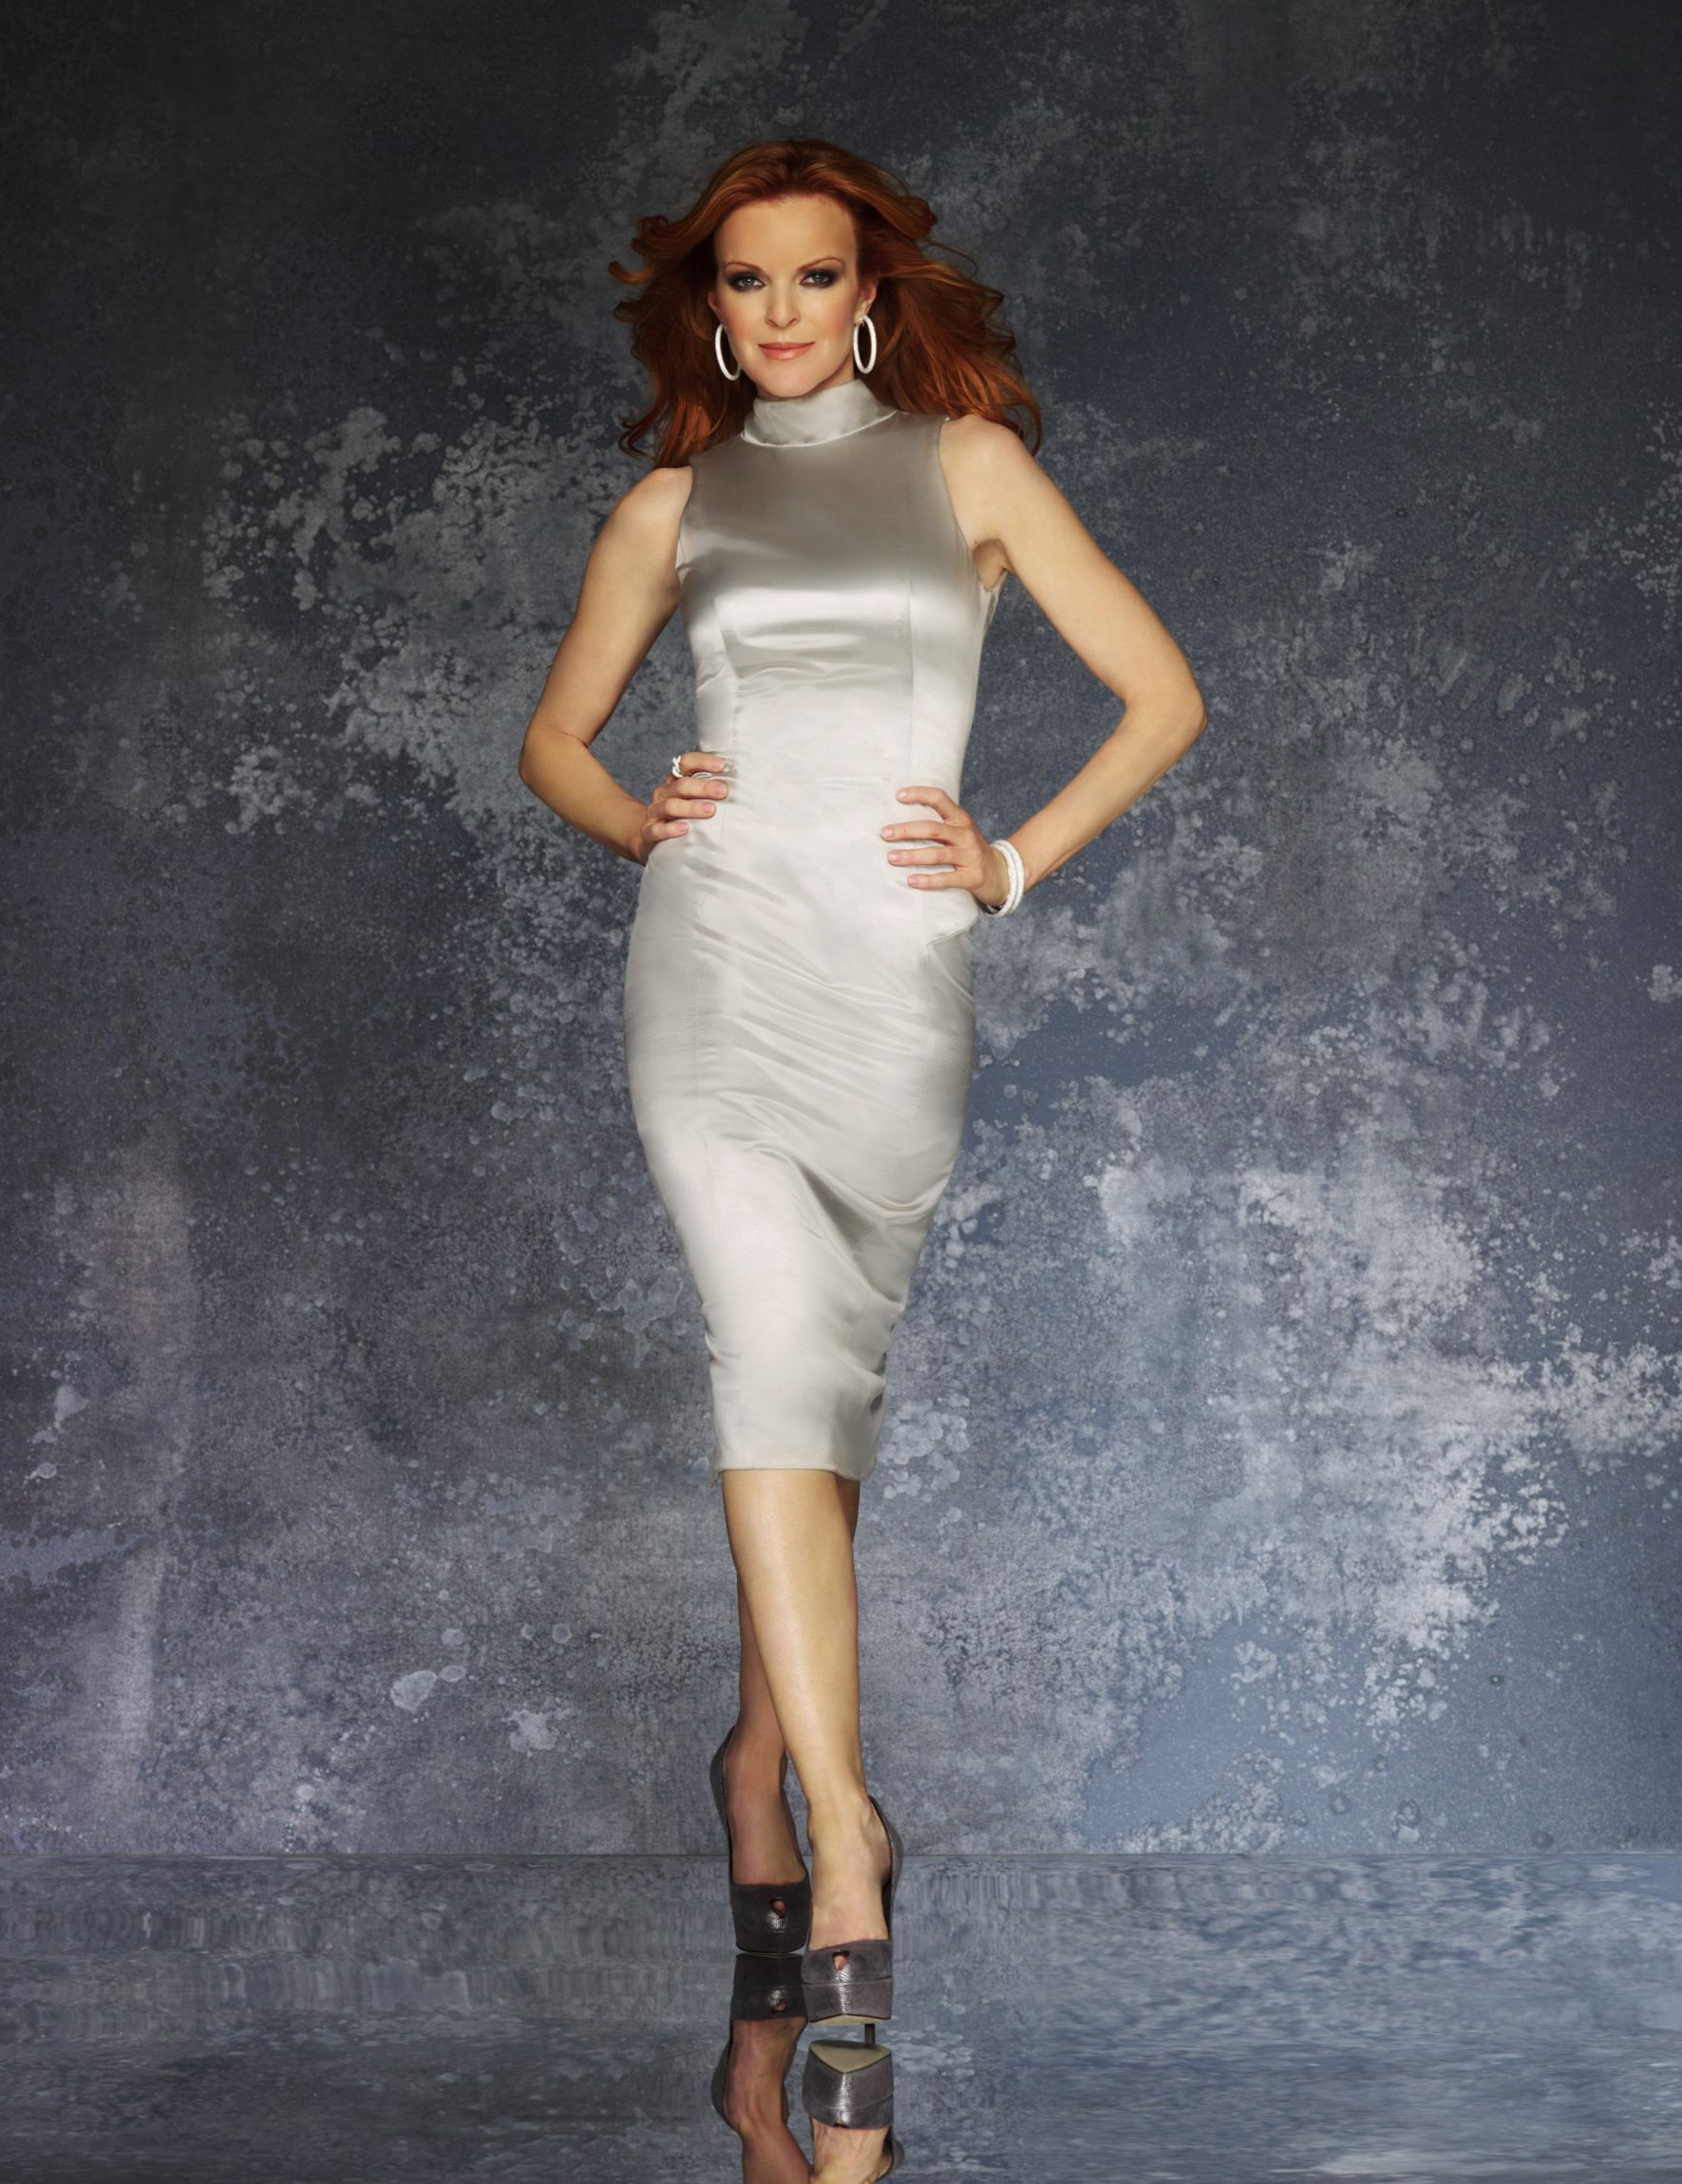 "women stereotype on tv desperate housewives More recently, eva longoria played a conniving latina homemaker who used her looks to advance her agenda in ""desperate housewives,"" and sofia vergara continues to play the role of gloria delgado-pritchett on ""modern family,"" which many prominent latinas argue not only fuels the stereotype that hispanic women are sexy but also loud ."